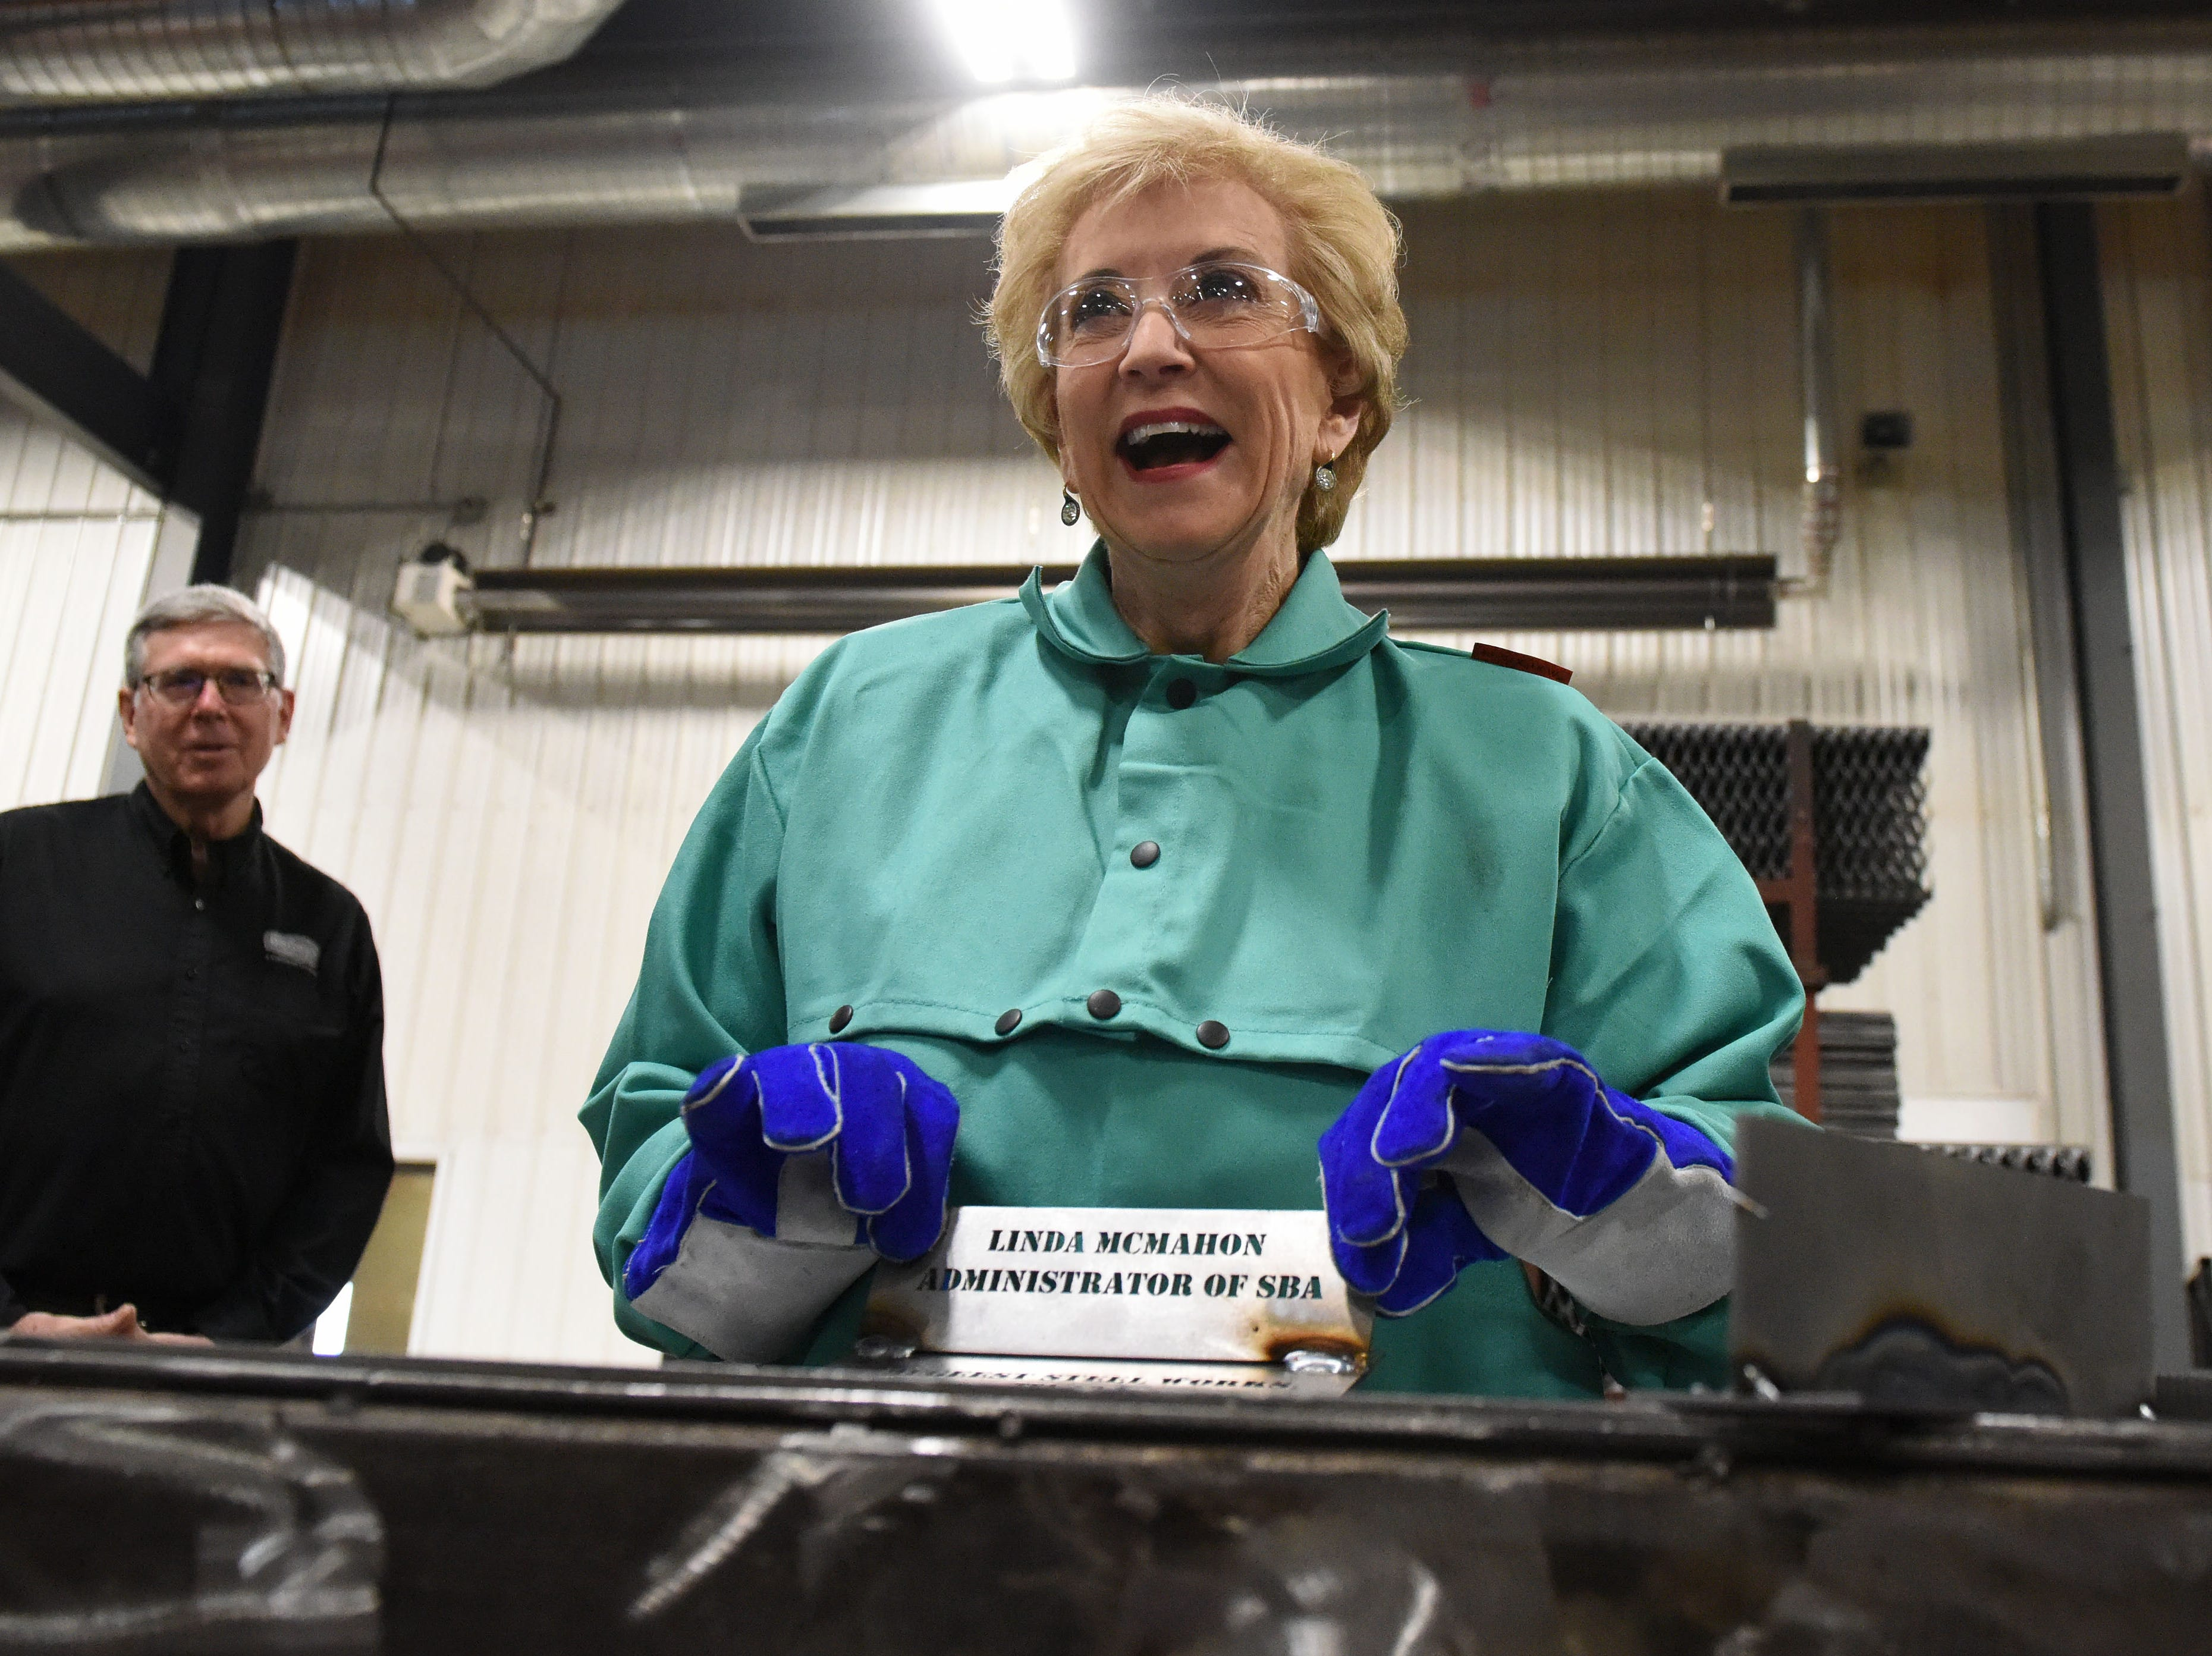 Linda McMahon, head of the U.S. Small Business Administration, shows off what she welded at DeGeest Steel Works in Tea, S.D., Thursday, Nov. 29, 2018.